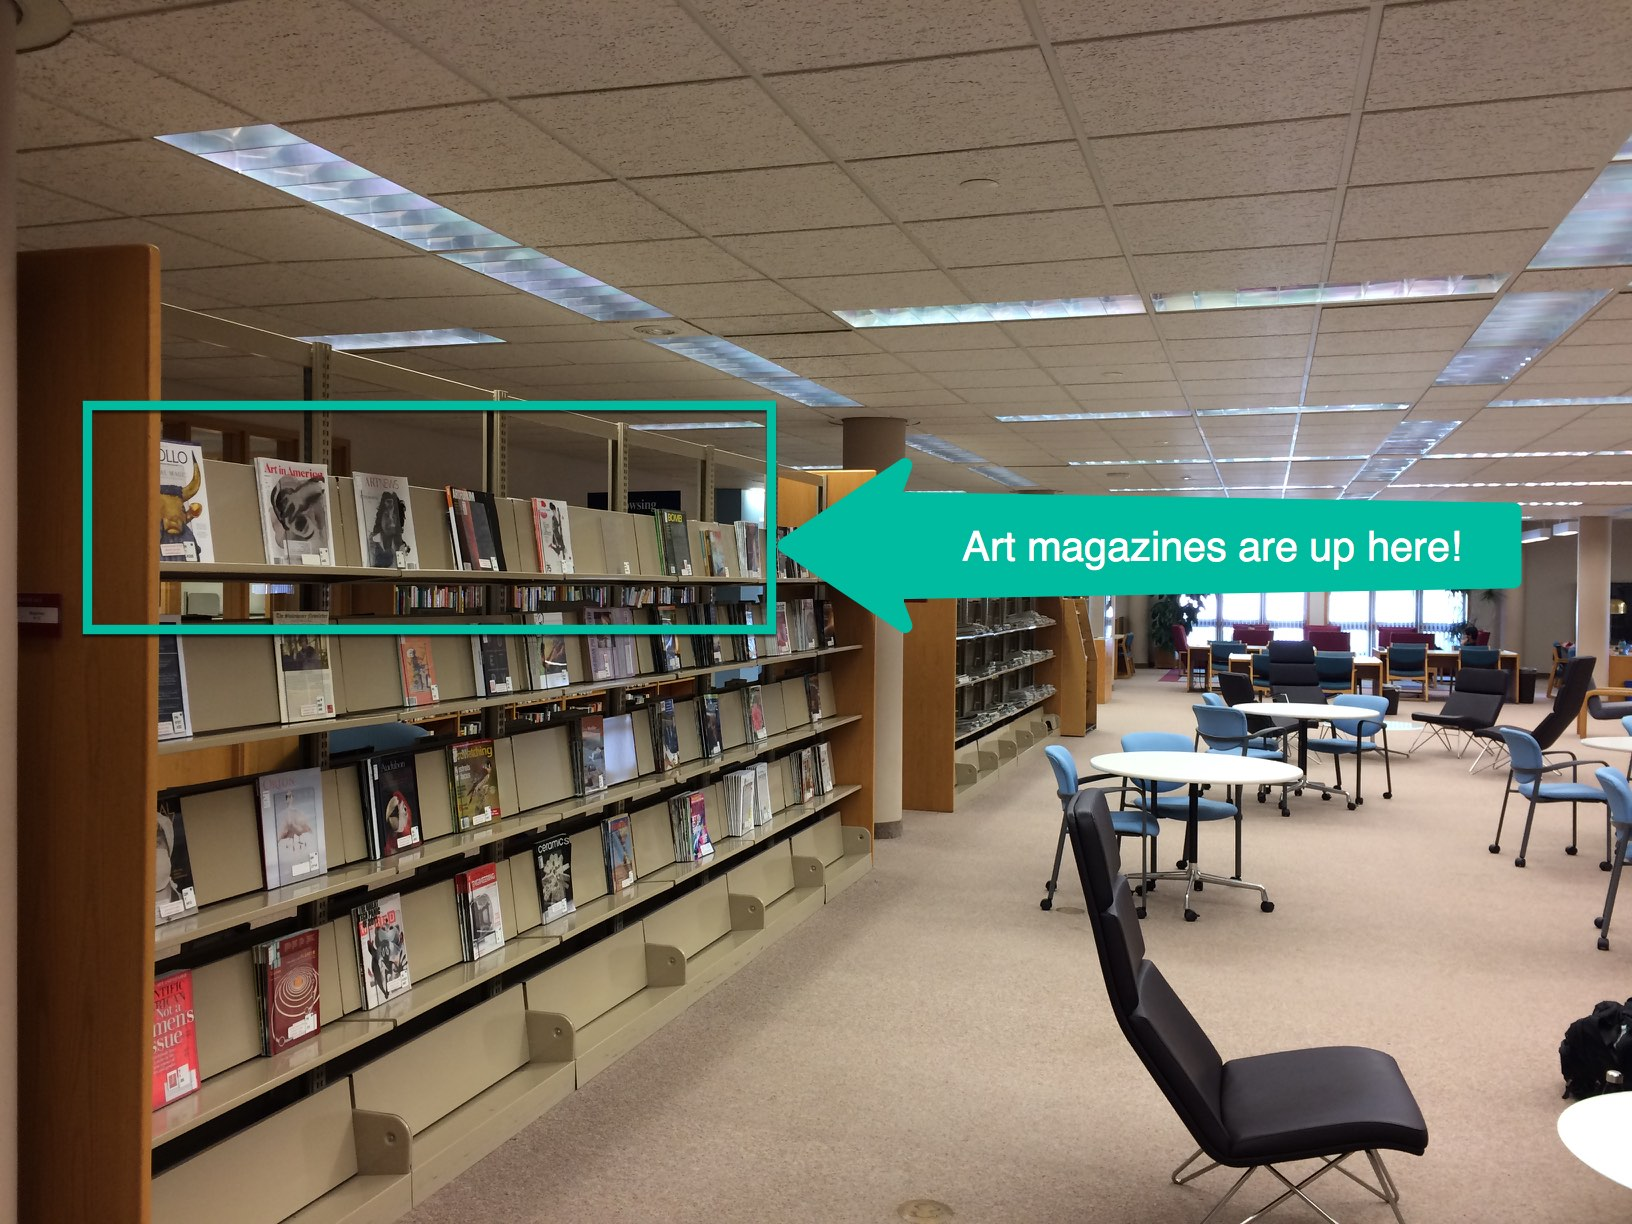 image showing location of art magazines in the library